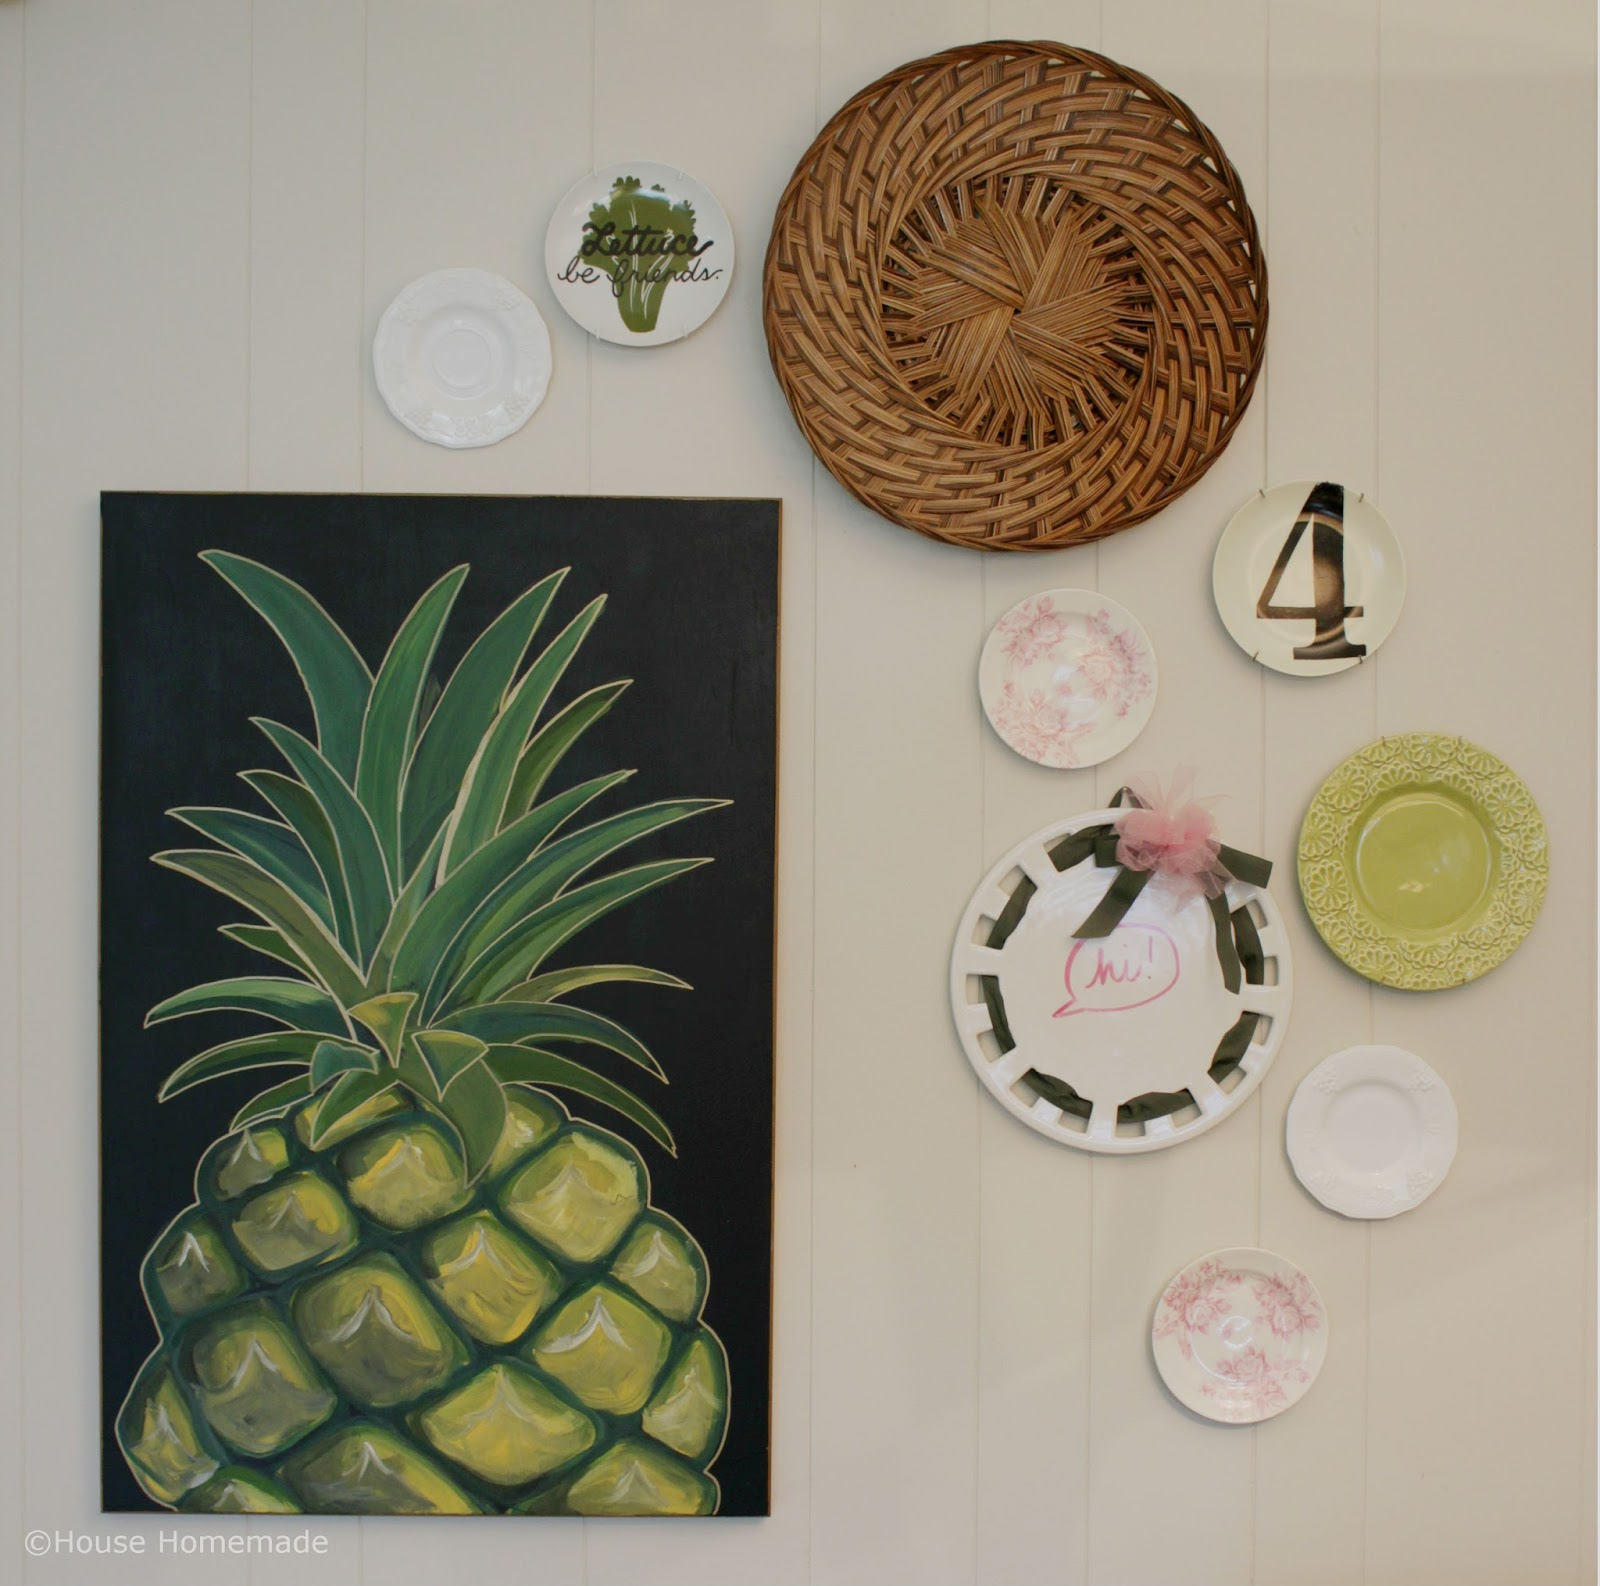 Wall Art Plates House Homemade How To Turn Decor Into Wall Art